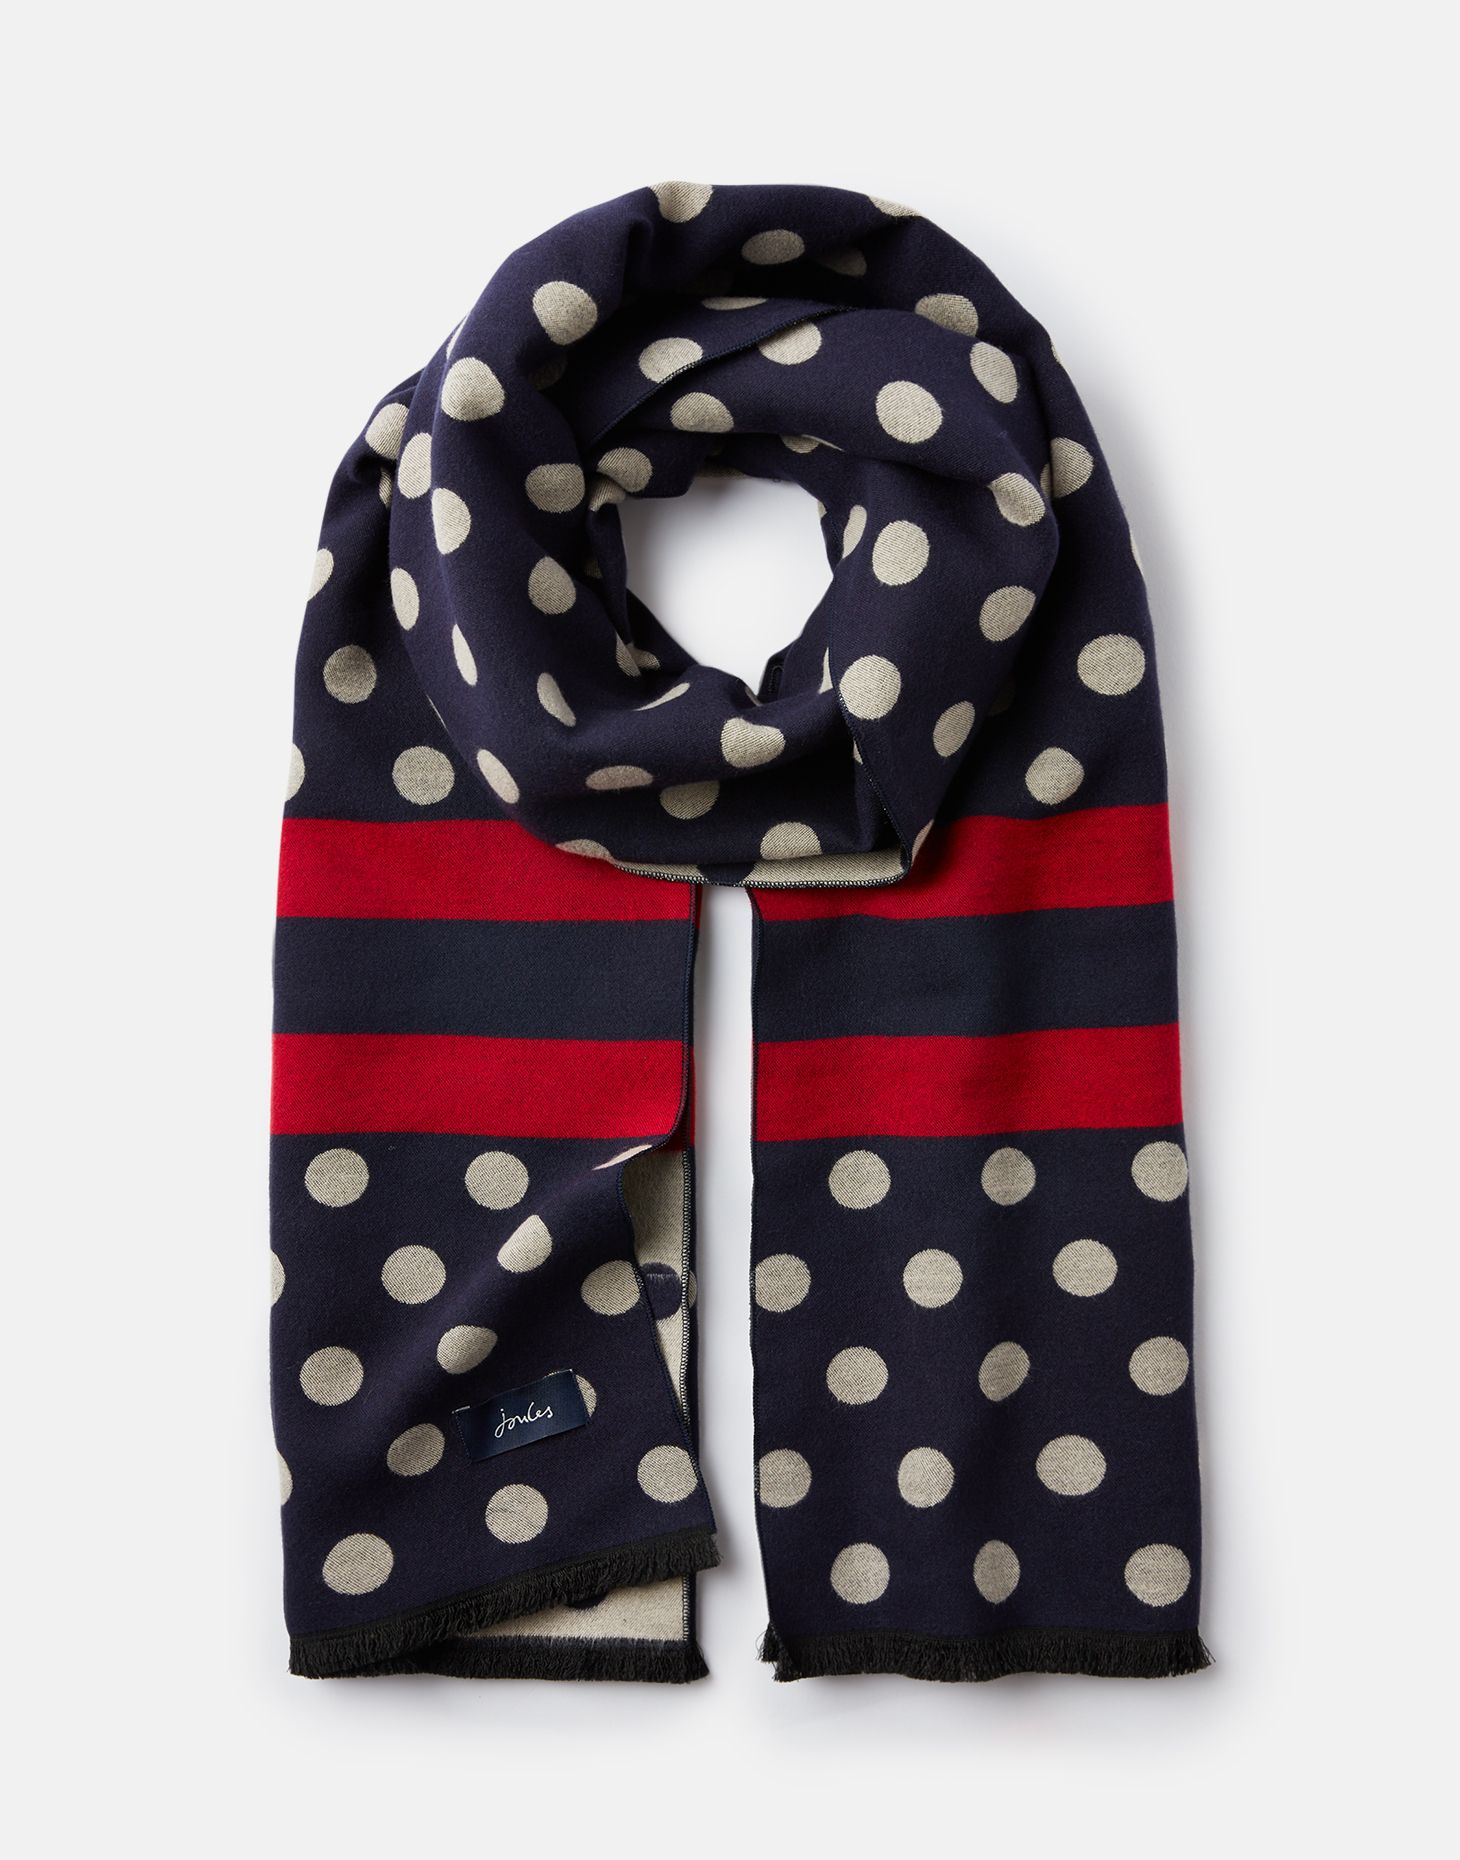 Joules Womens Jacquelyn Jacquard Scarf in FRENCH NAVY SPOT in One Size